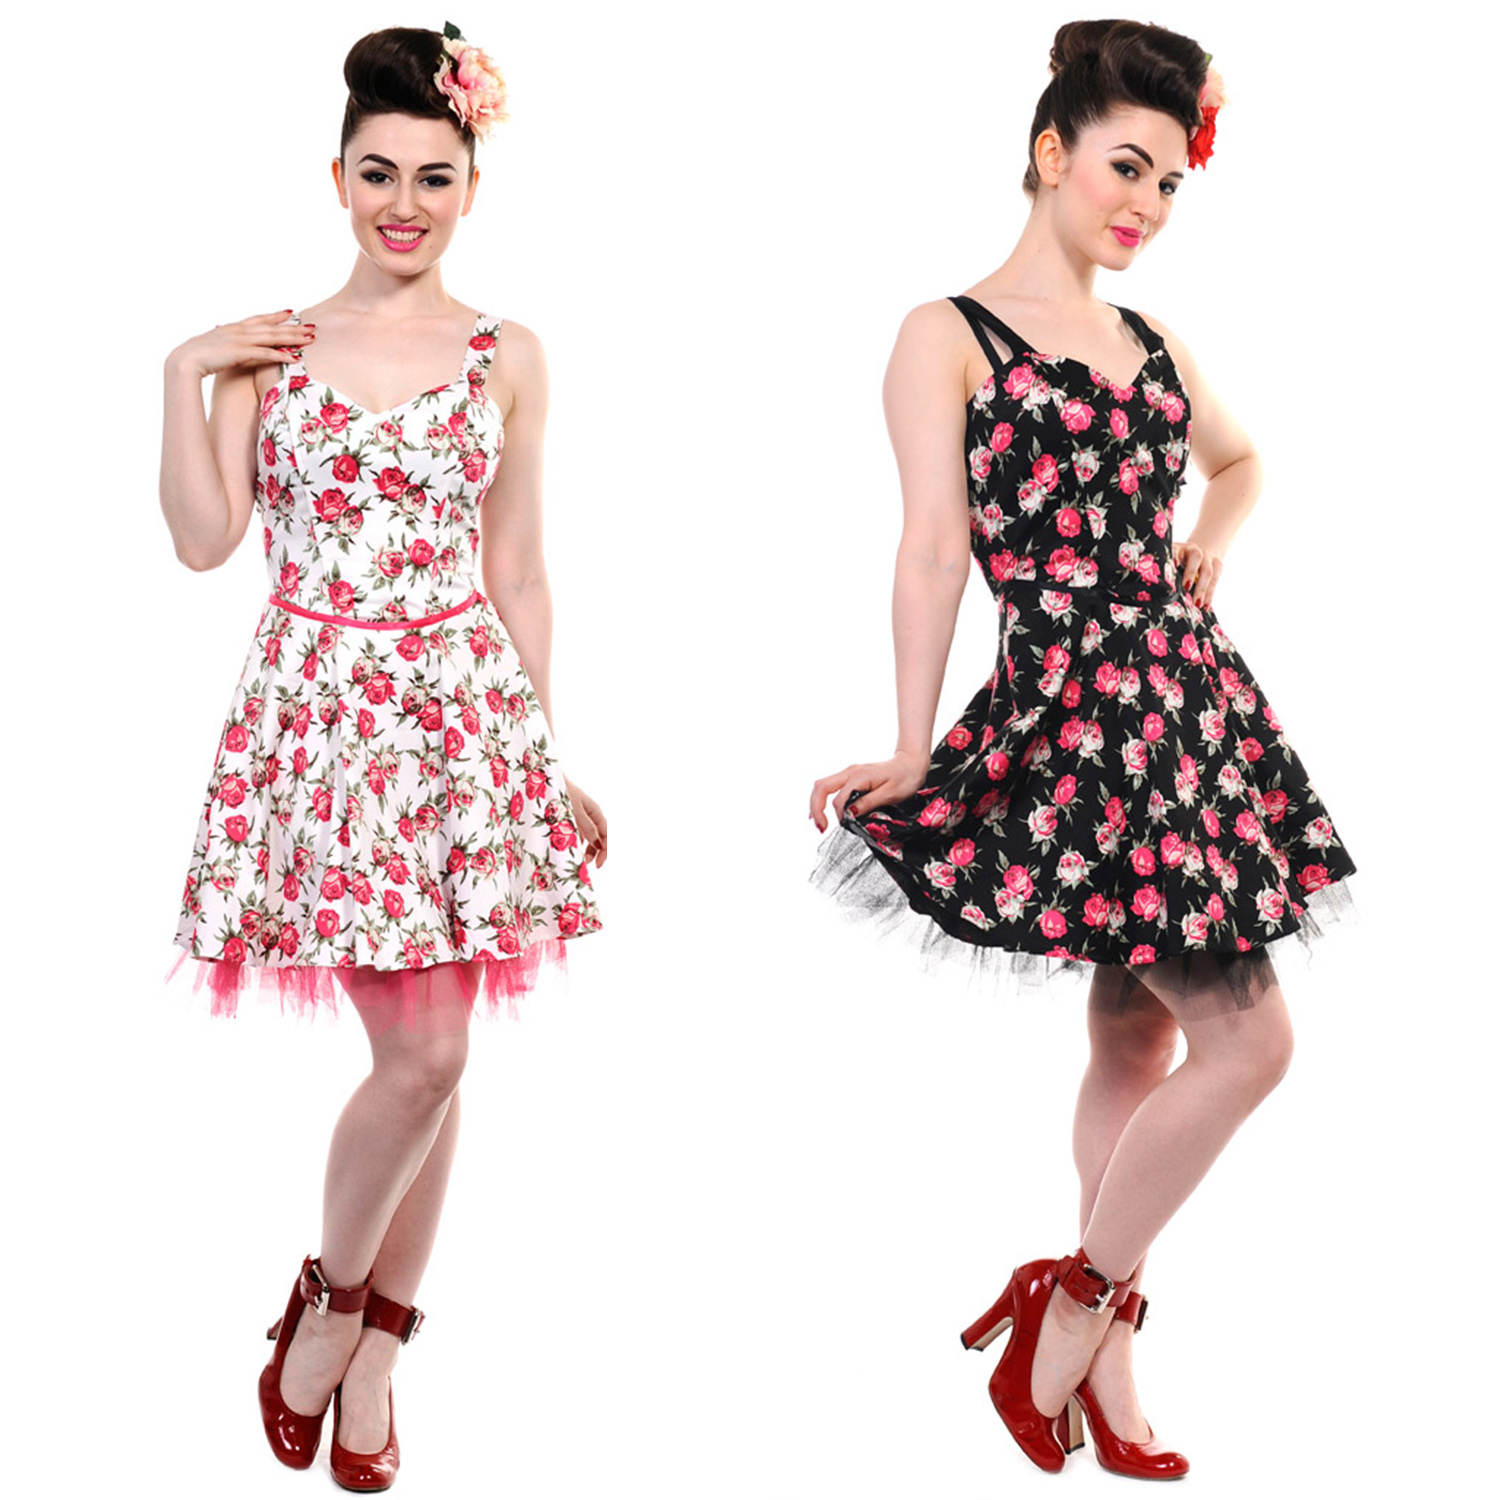 Banned new ladies black white pink floral vintage 50s rockabilly image is loading banned new ladies black white pink floral vintage mightylinksfo